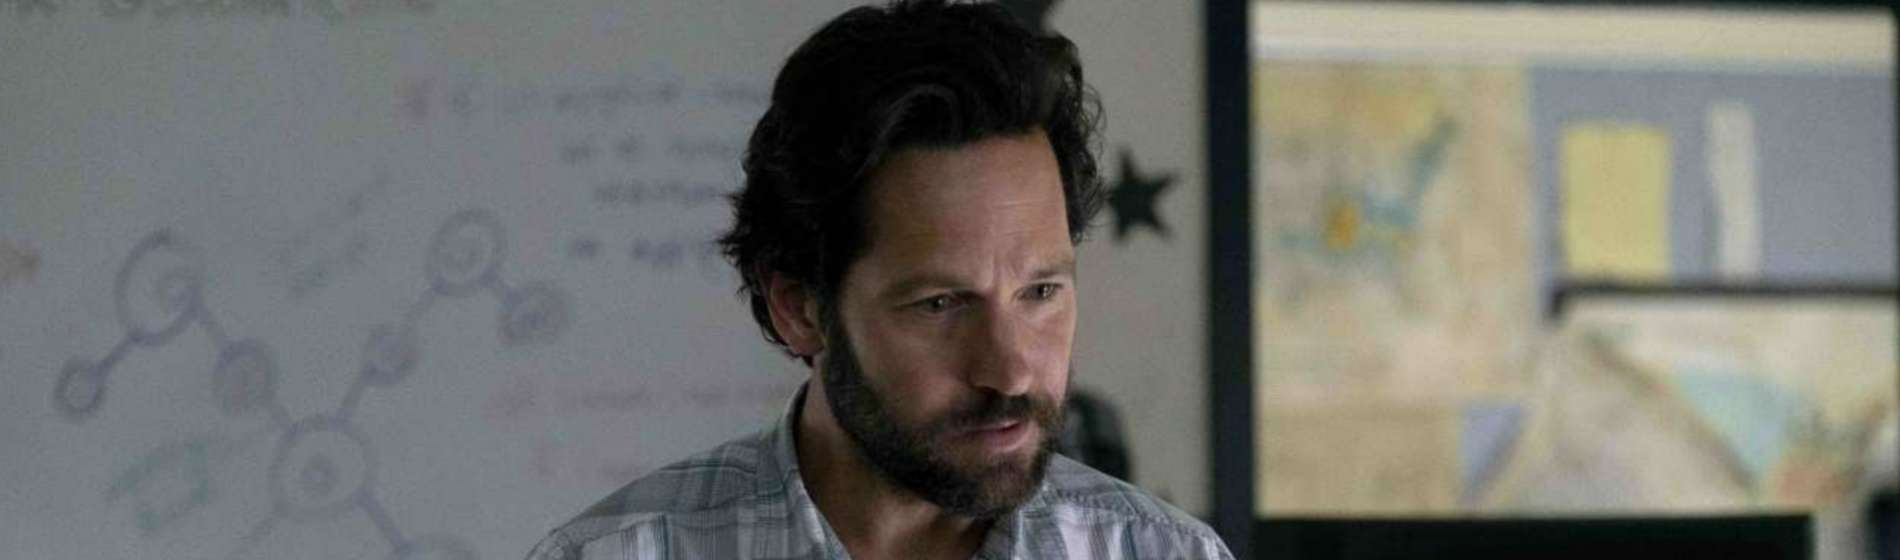 ghostbusters-afterlife-feature-image-paul-rudd.jpg